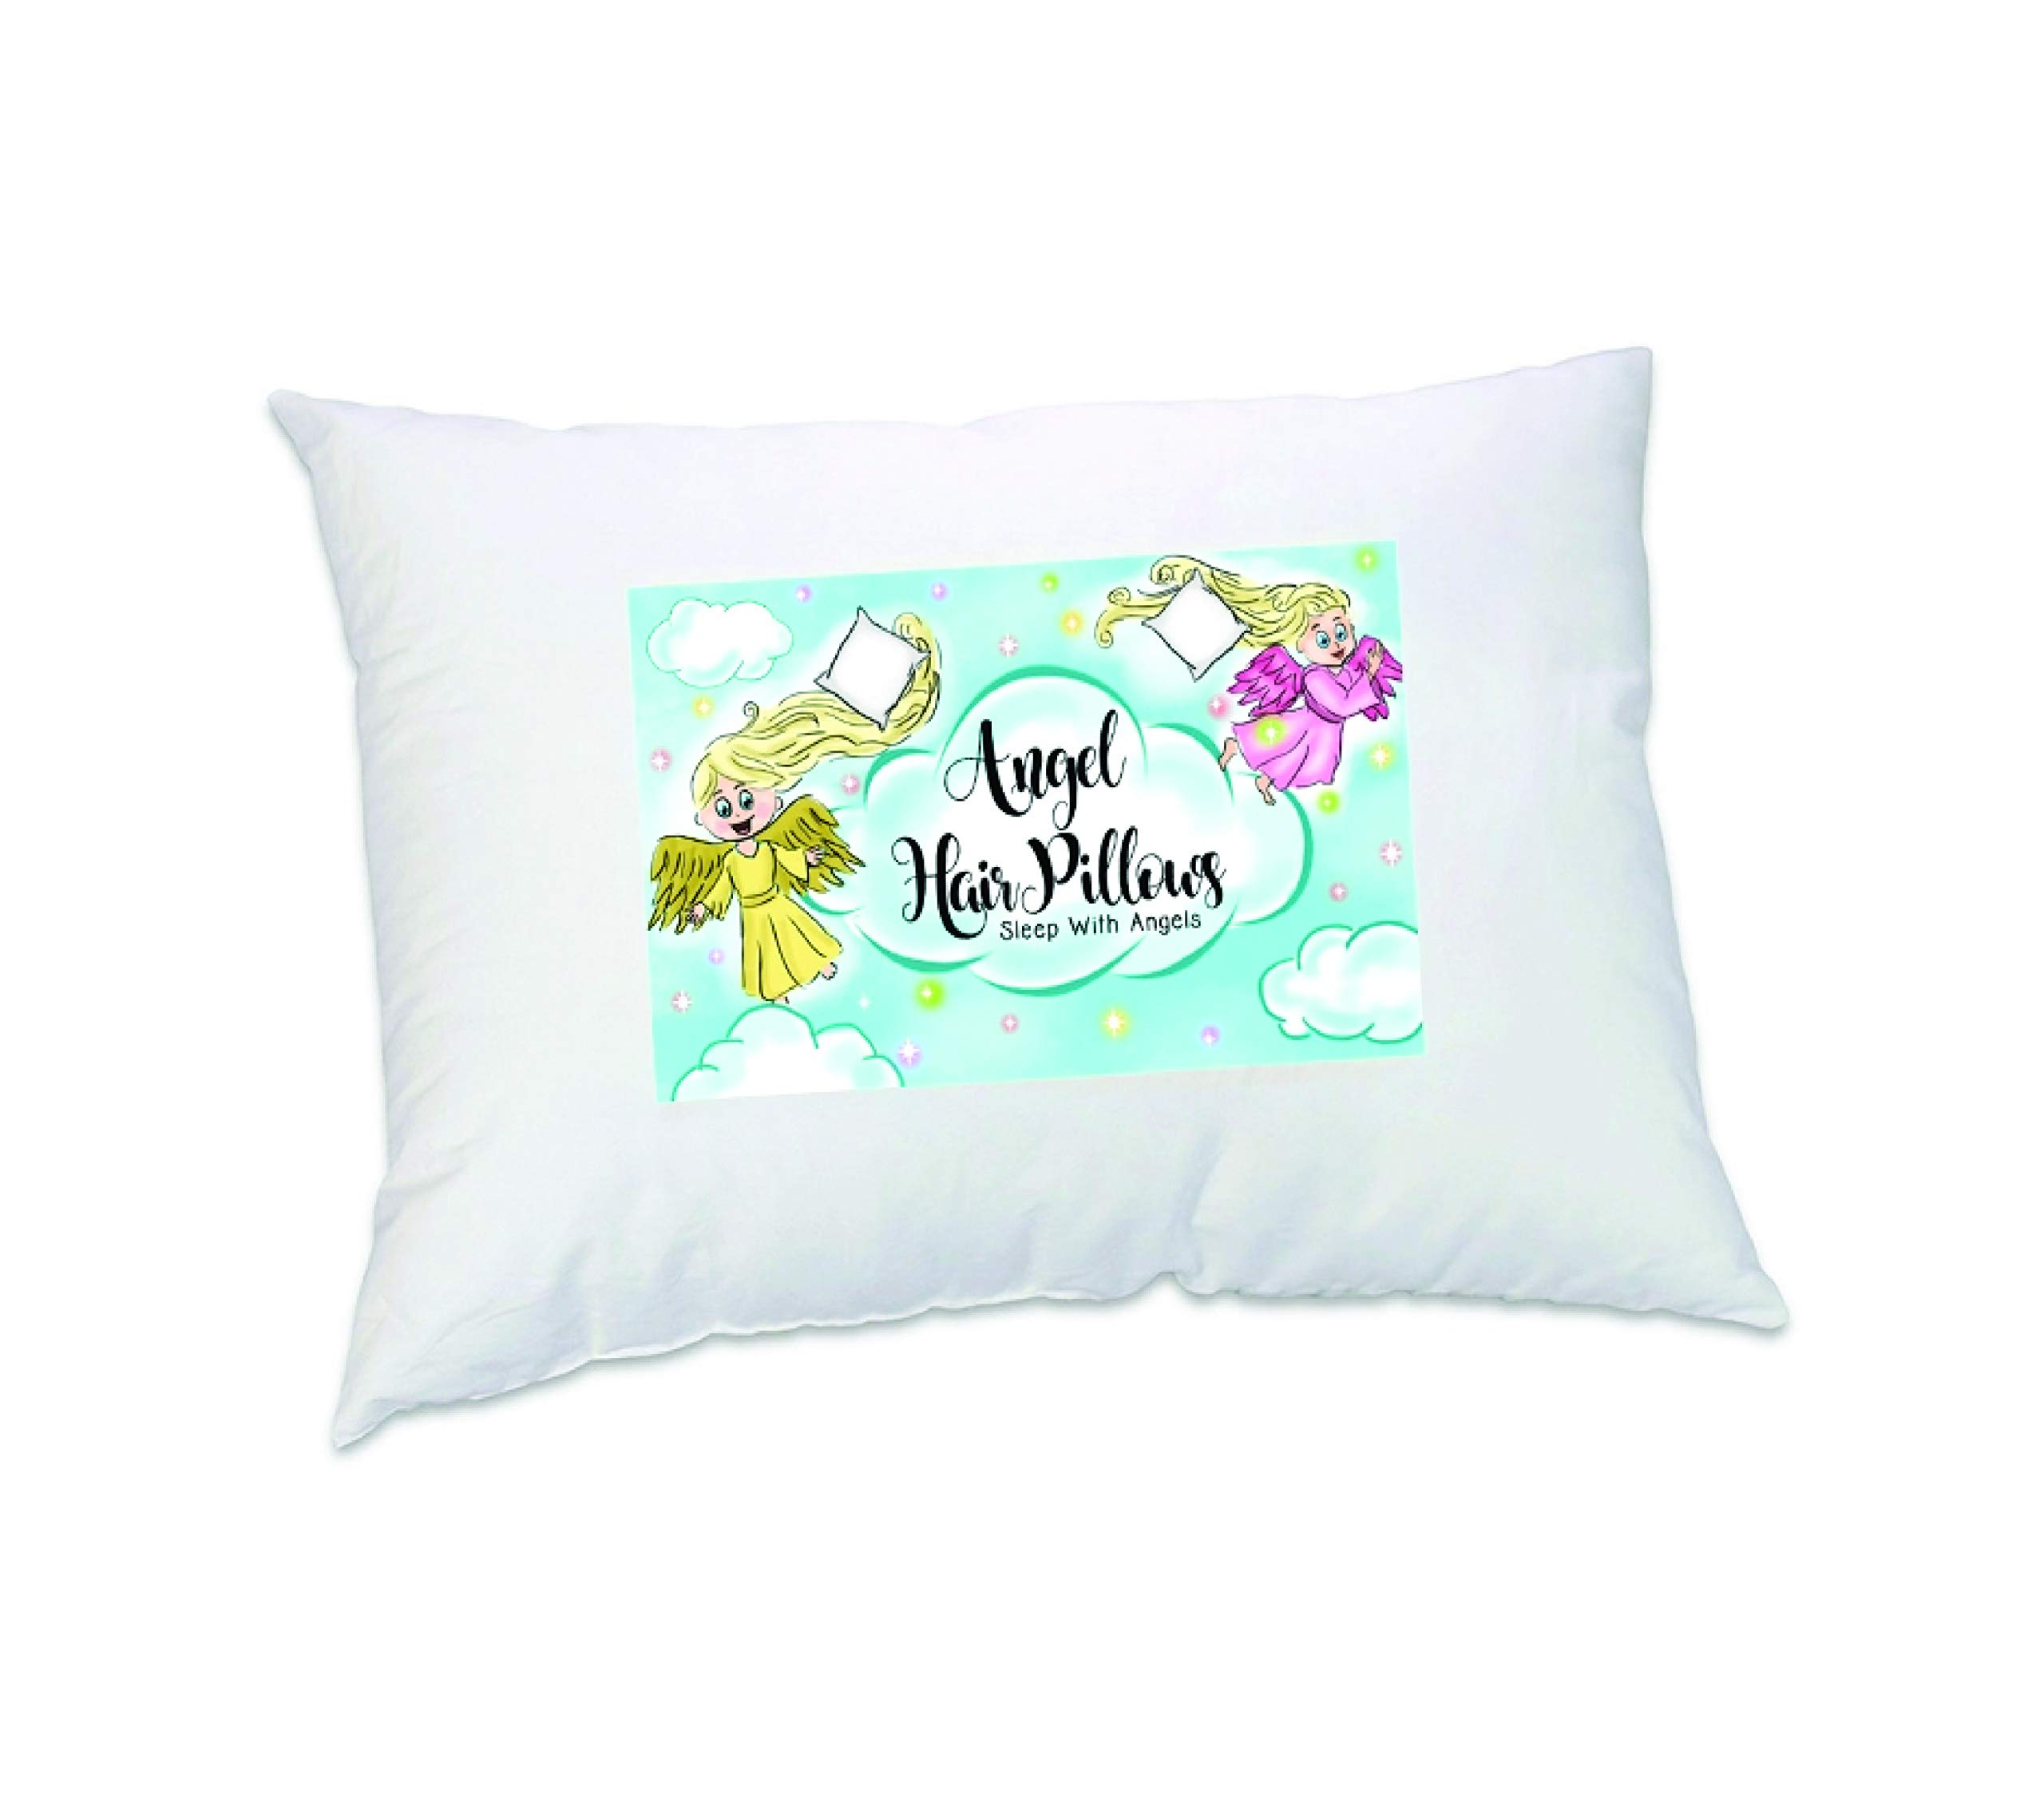 Babydays Toddler Pillow 13 X 18 White Hypoallergenic, Anti Clumping,❤ Angel Hair ❤ Toddler Pillows, Ultra Soft Plush, Kids Best Small Pillow for Better Sleeping Made in The USA by Babydays